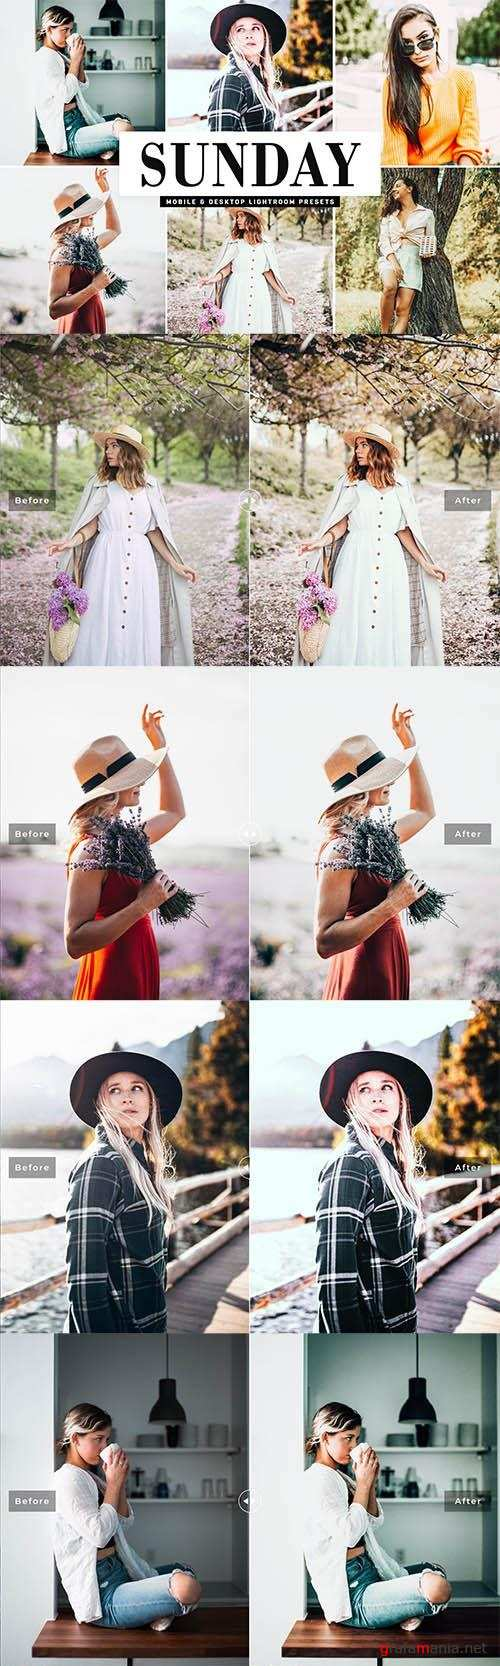 Sunday Lightroom Presets Pack - Mobile & Desktop